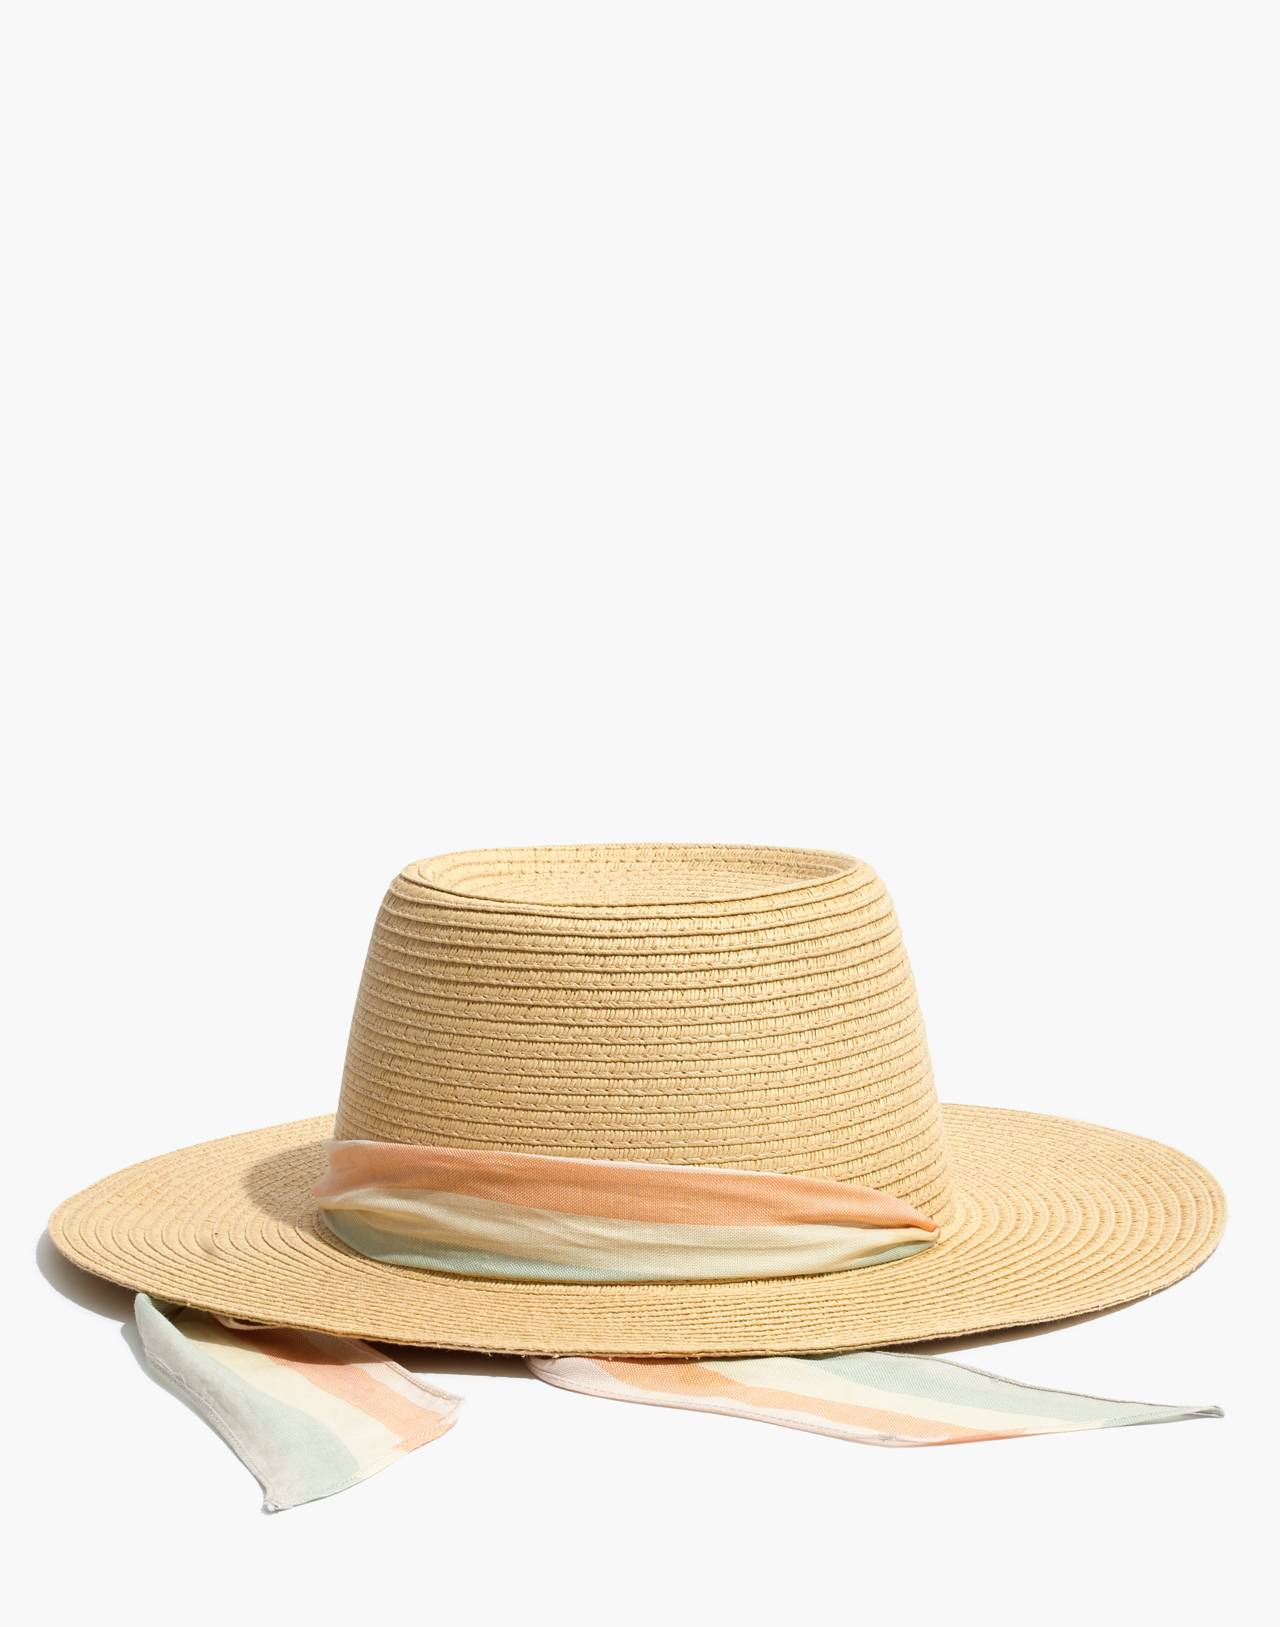 Stampede-Strap Straw Boater Hat in natural straw image 1